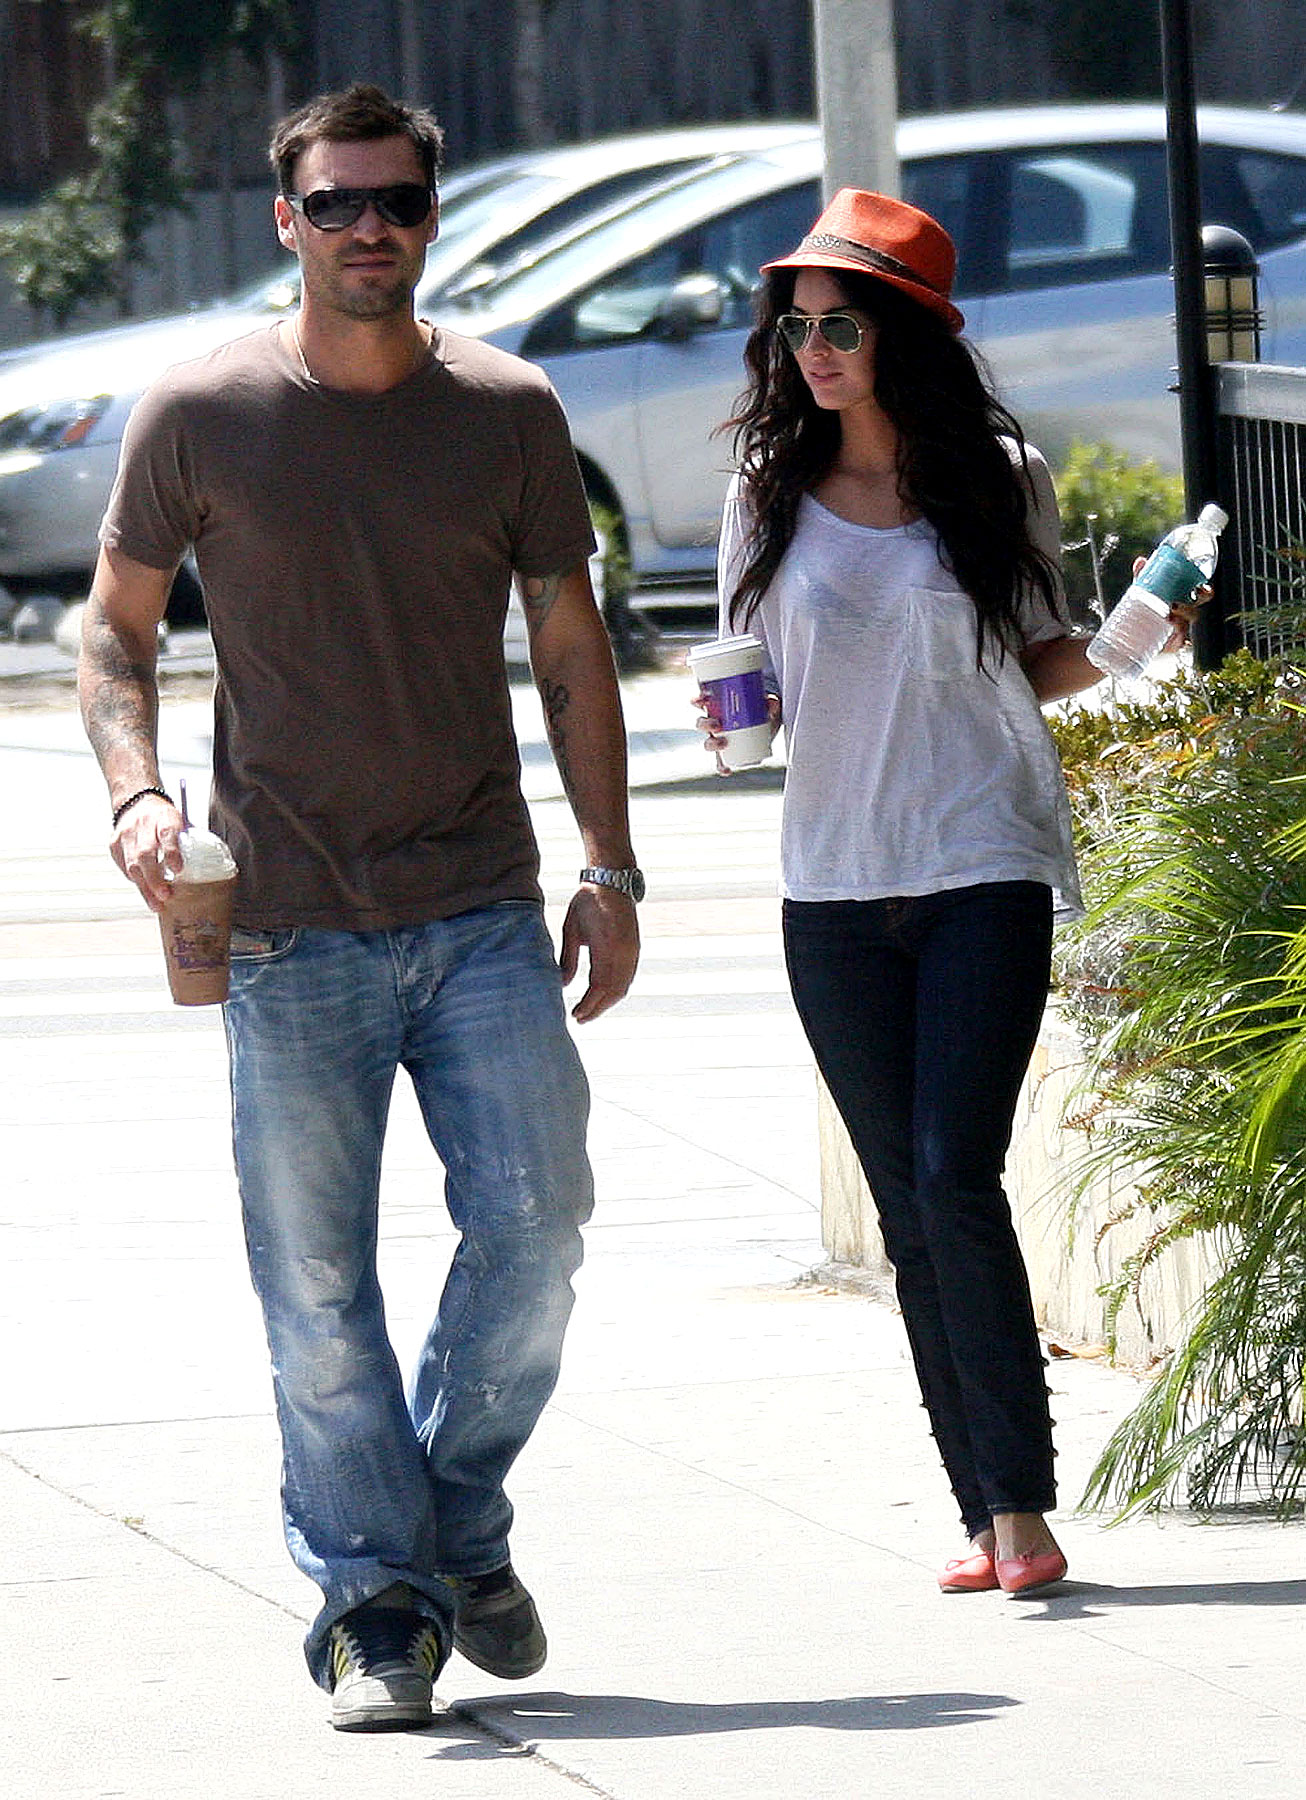 PHOTO GALLERY: Megan Fox and Brian Austin Green Together Again